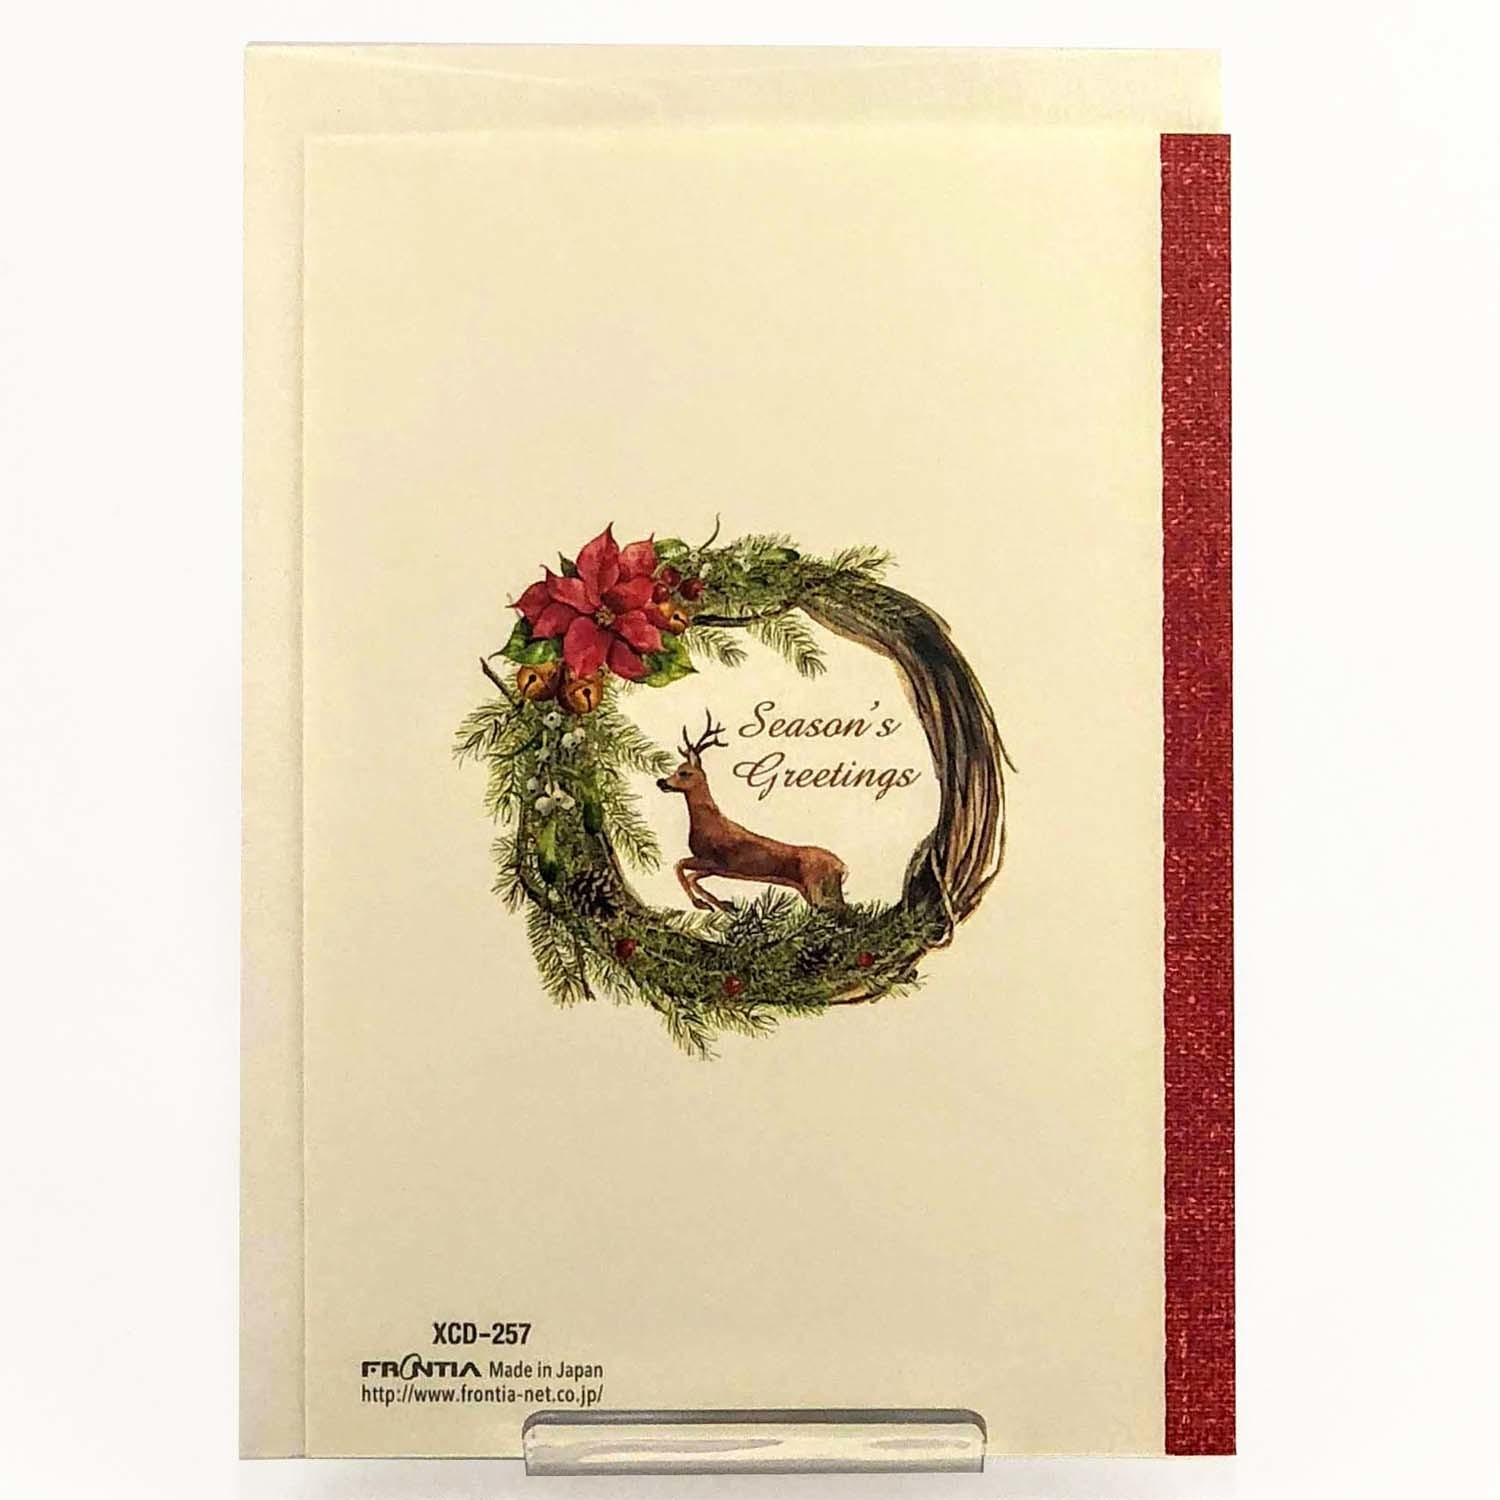 Christmas Card Wreath Export Japanese Products To The World At